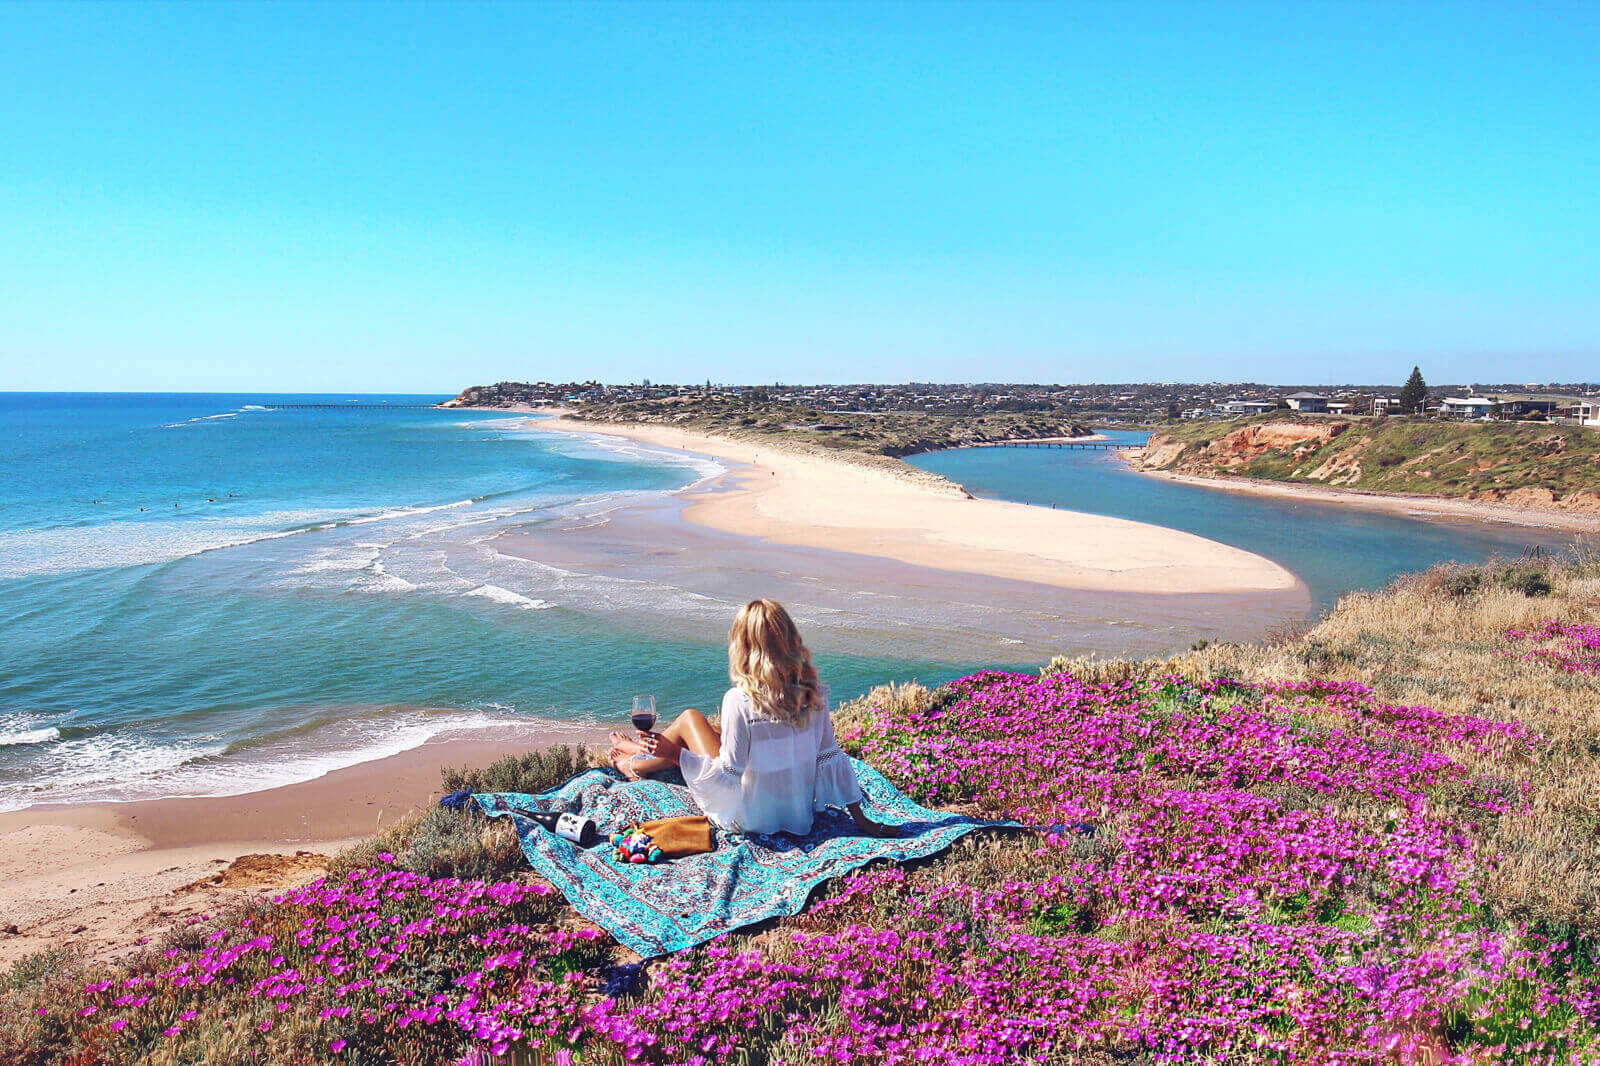 port noarlunga, christies beach and moana